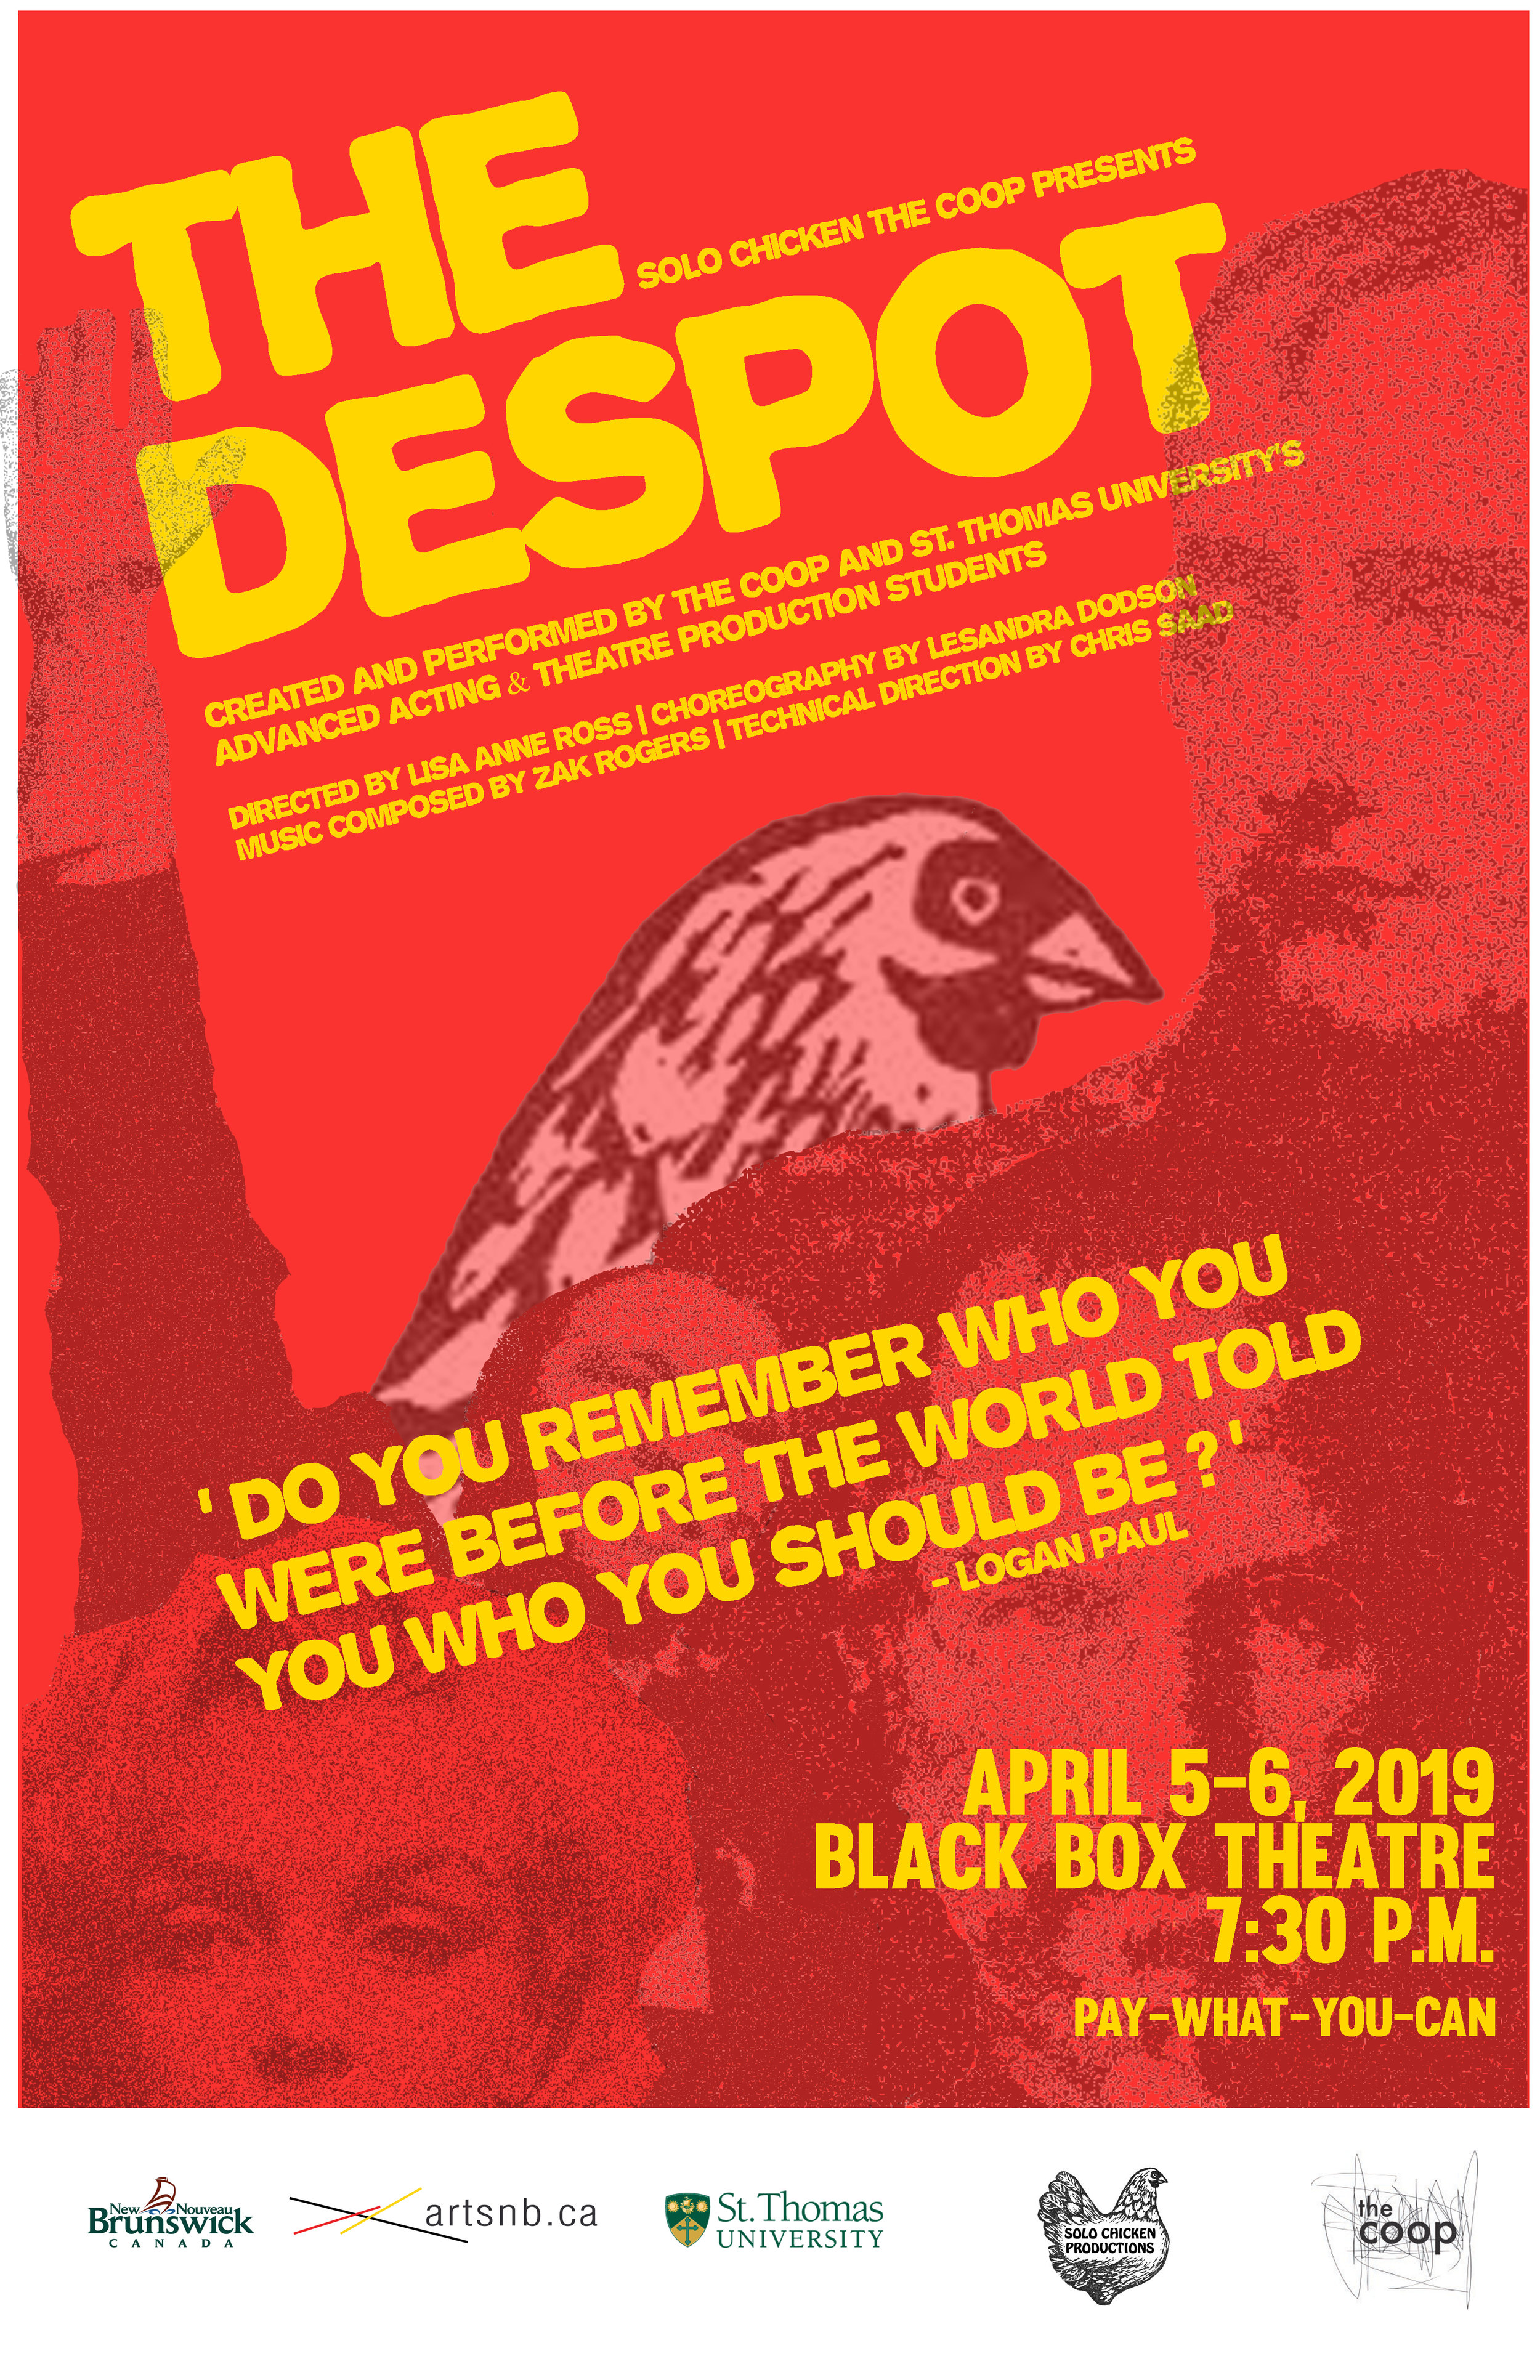 The Despot - Final Draft - Poster.jpg